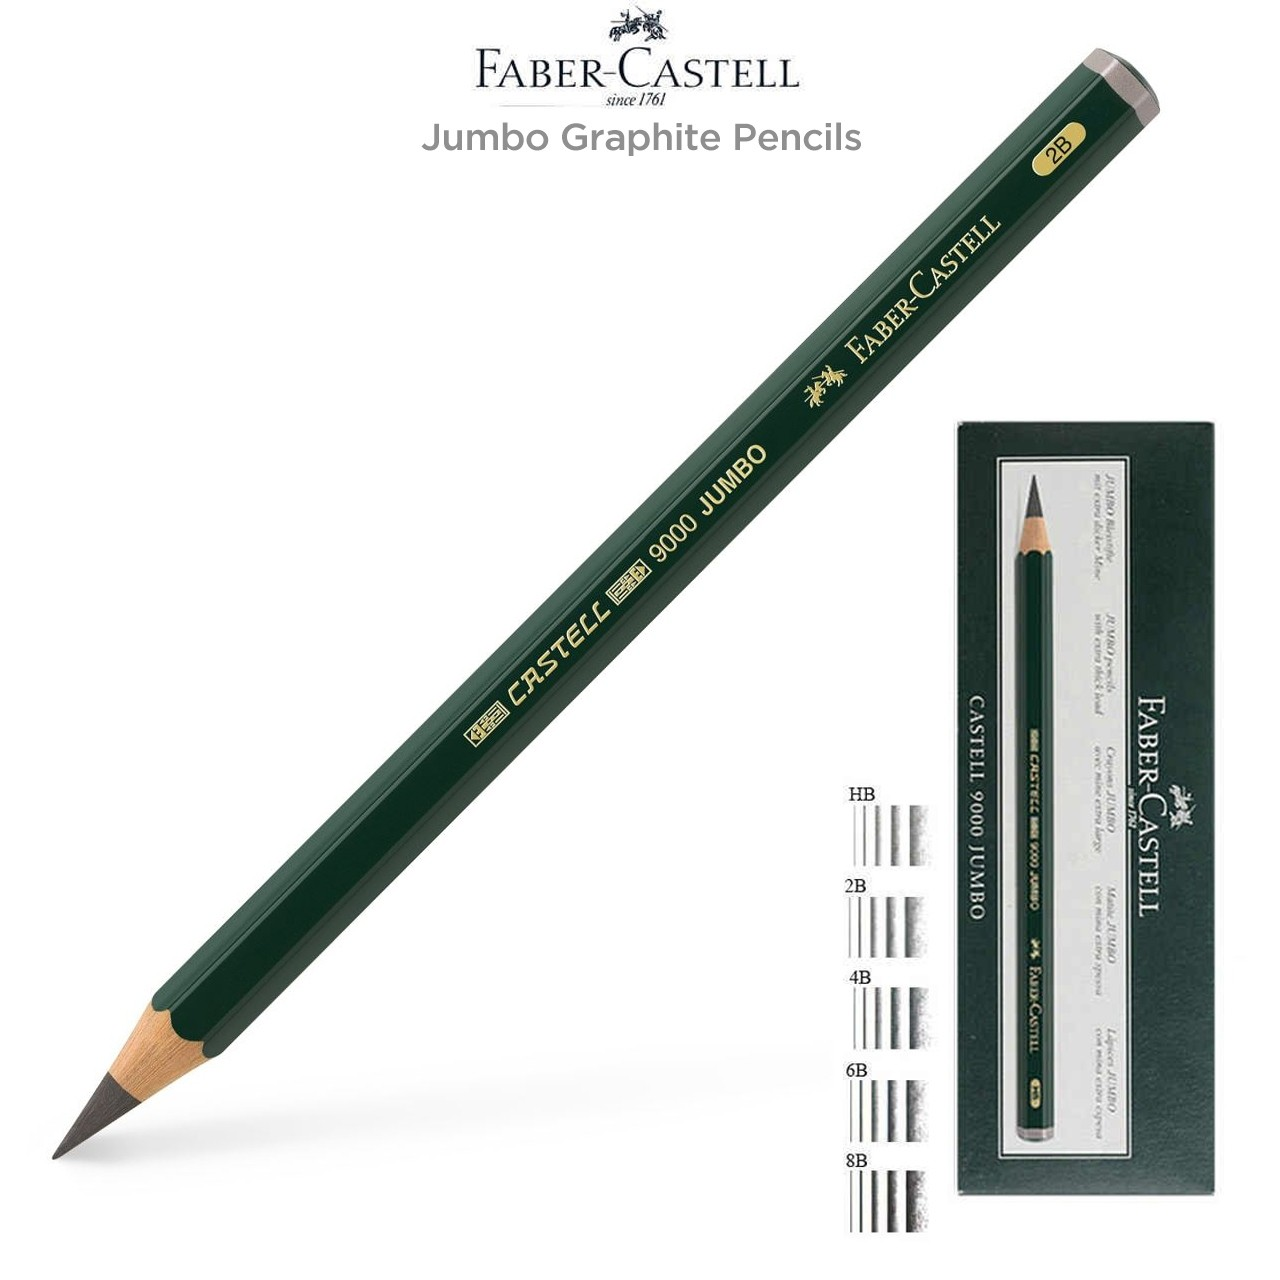 Faber castell 9000 jumbo graphite pencils s